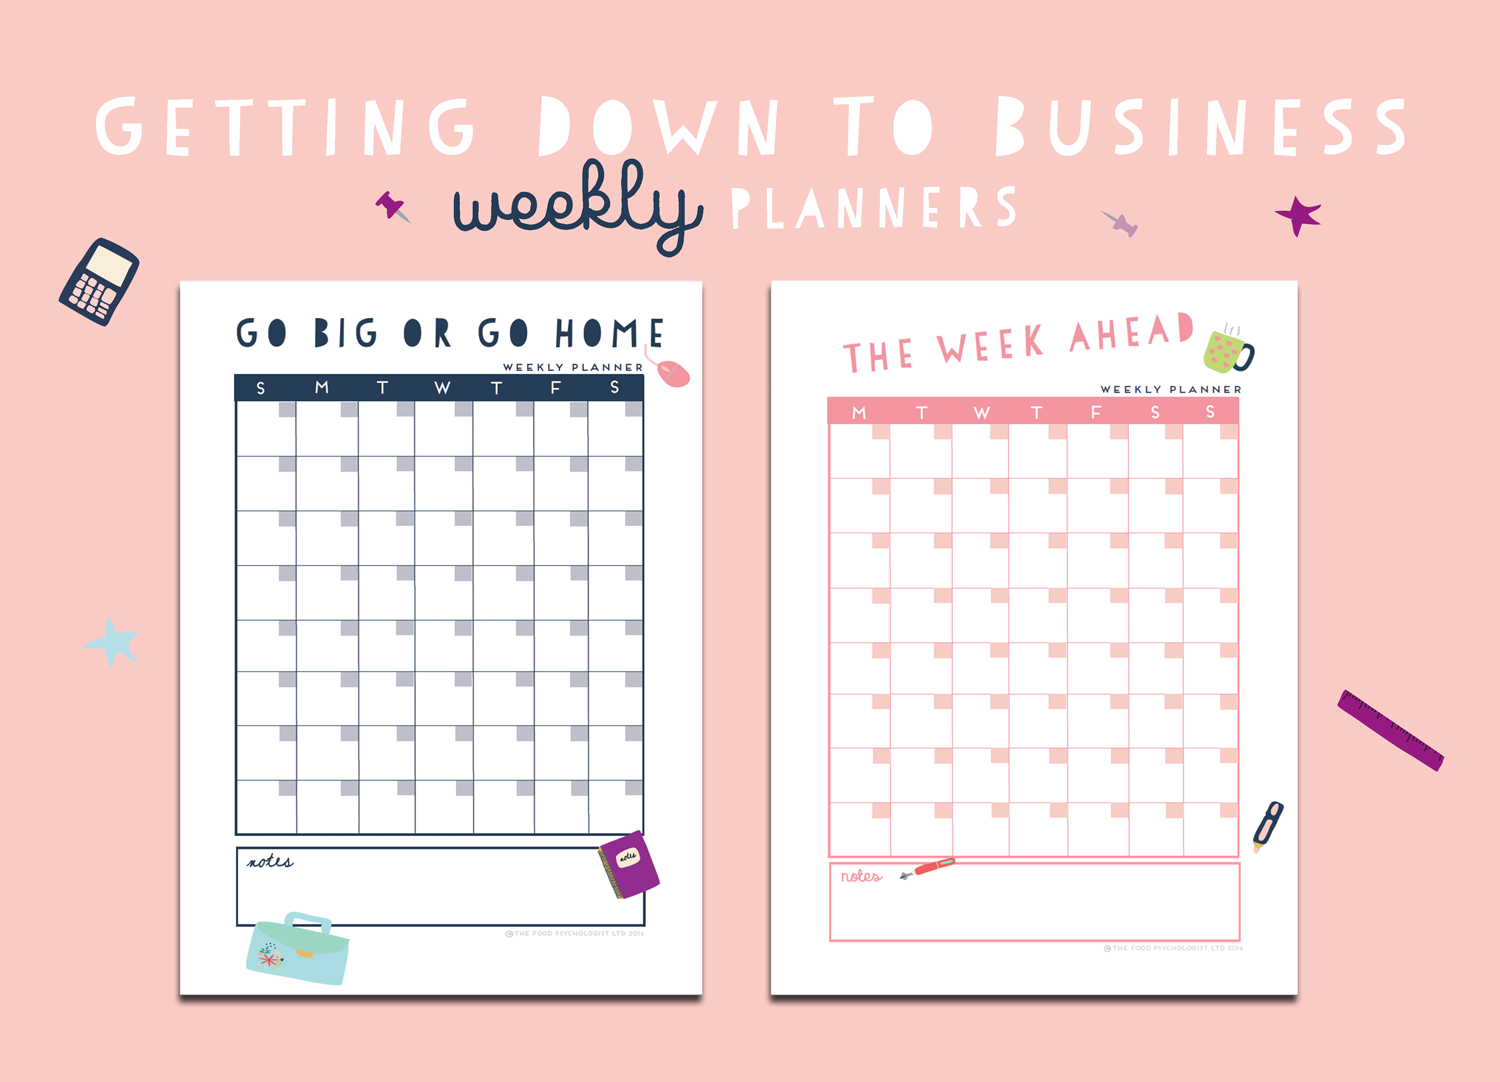 Getting Down To Business Weekly Planners